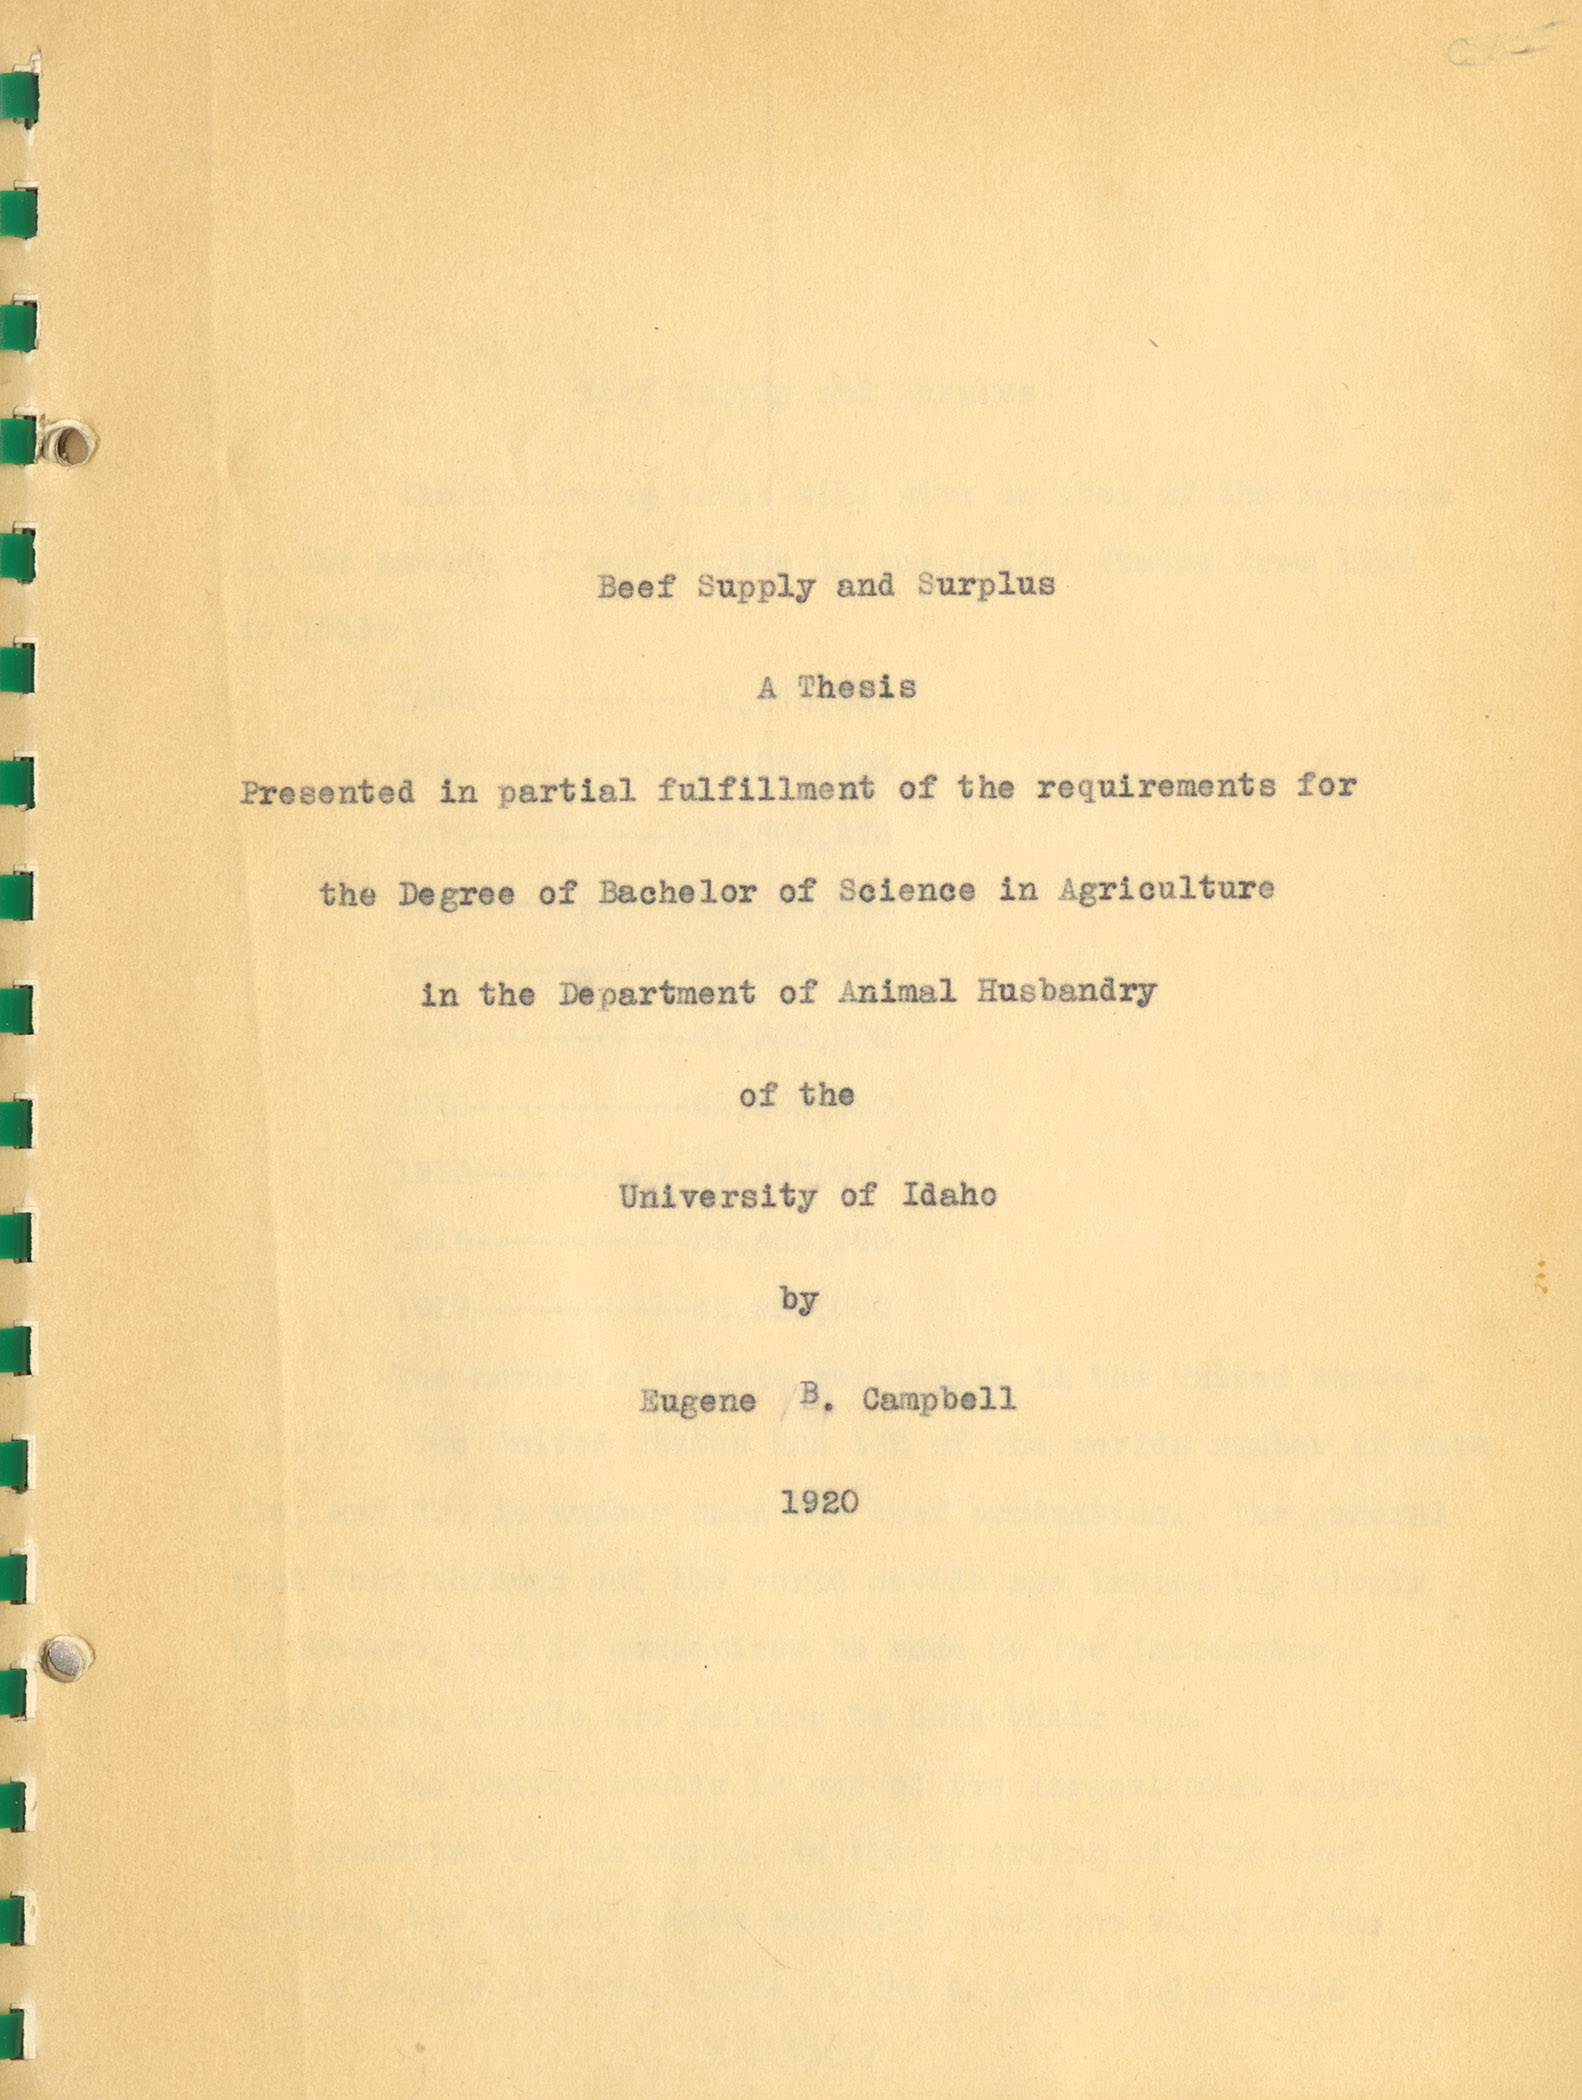 Distribution of Salt and Moisture in Butter as affected by storage, a 1917 Thesis written by Ricahrd D. Canan